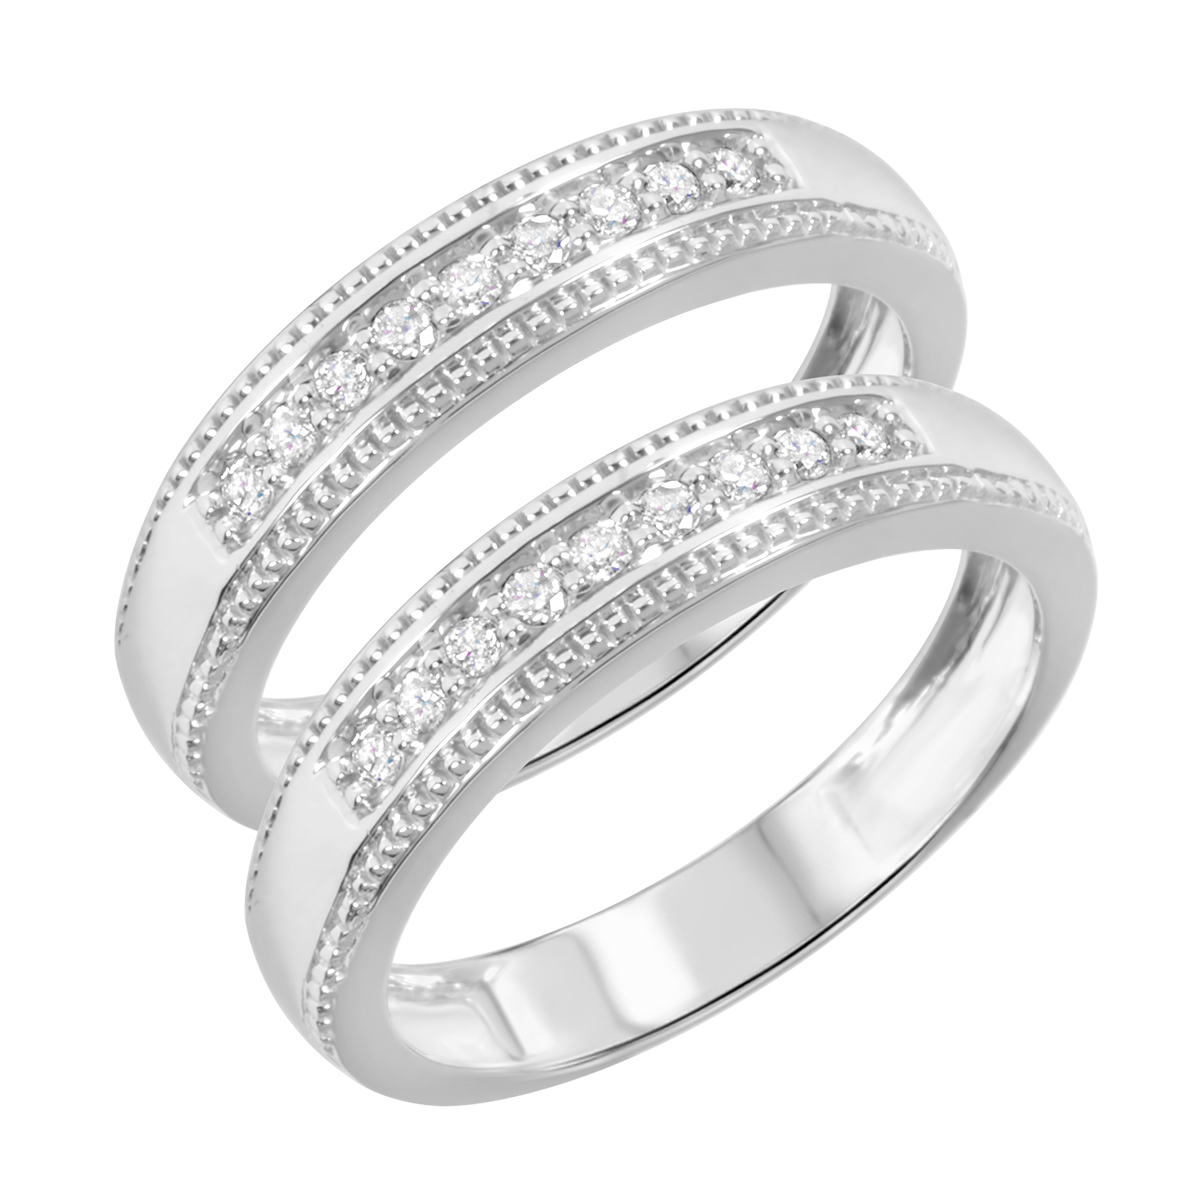 1/4 Carat T.W. Round Cut Ladies Same Sex Wedding Band Set 14K White Gold- Size 8